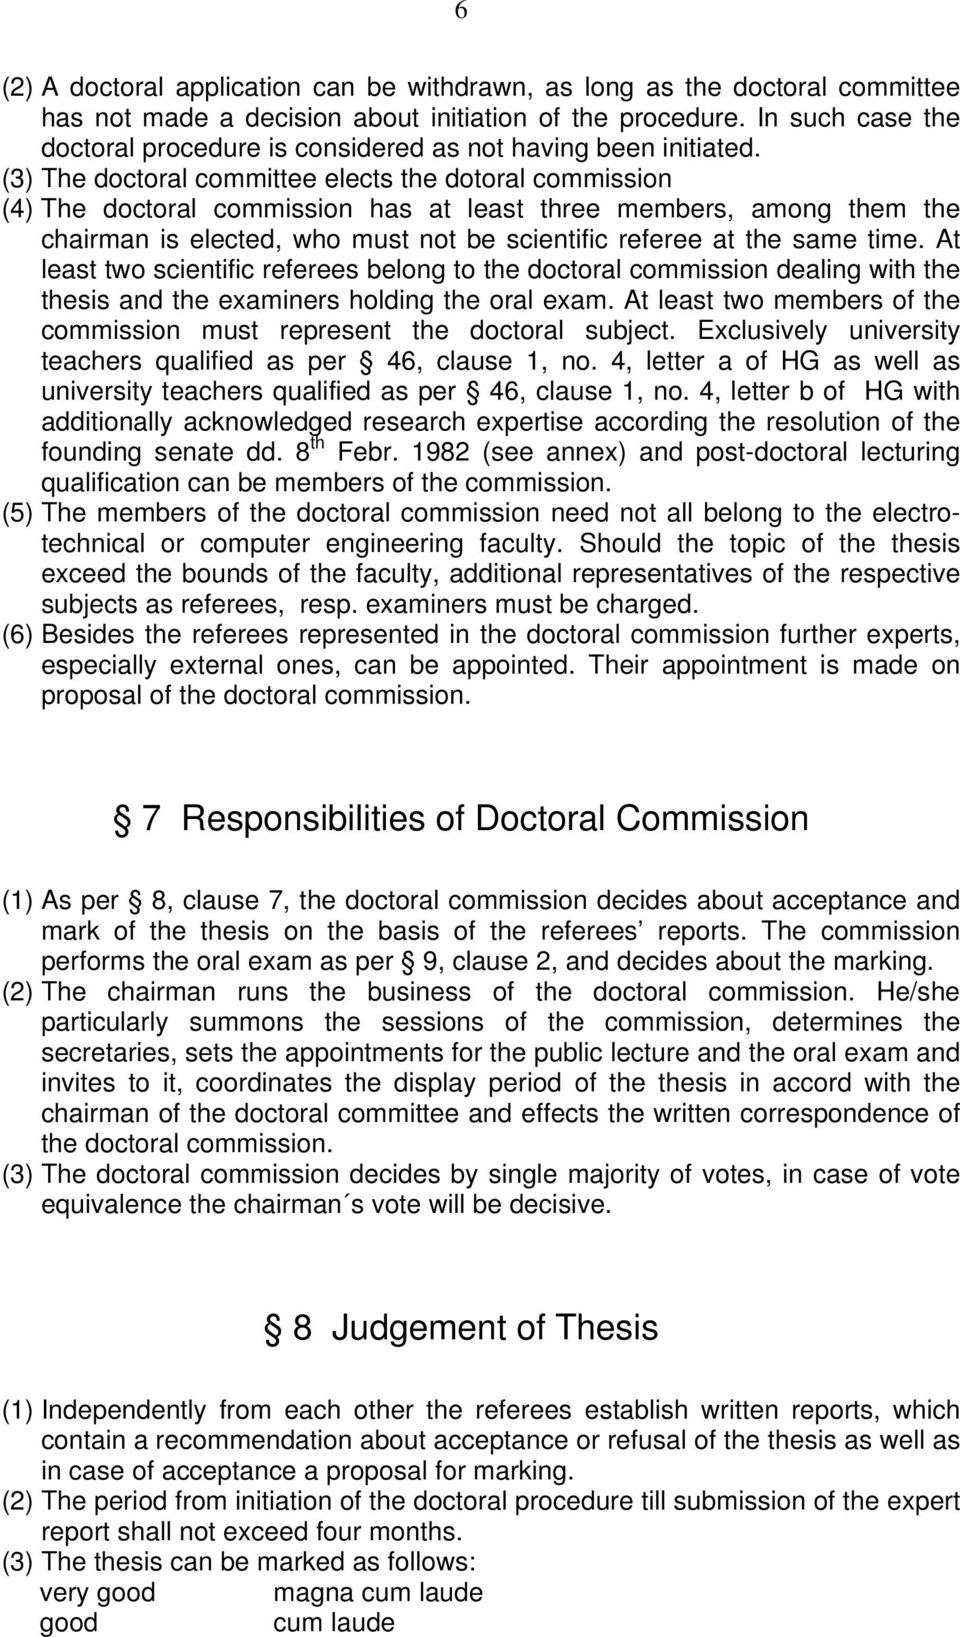 (3) The doctoral committee elects the dotoral commission (4) The doctoral commission has at least three members, among them the chairman is elected, who must not be scientific referee at the same